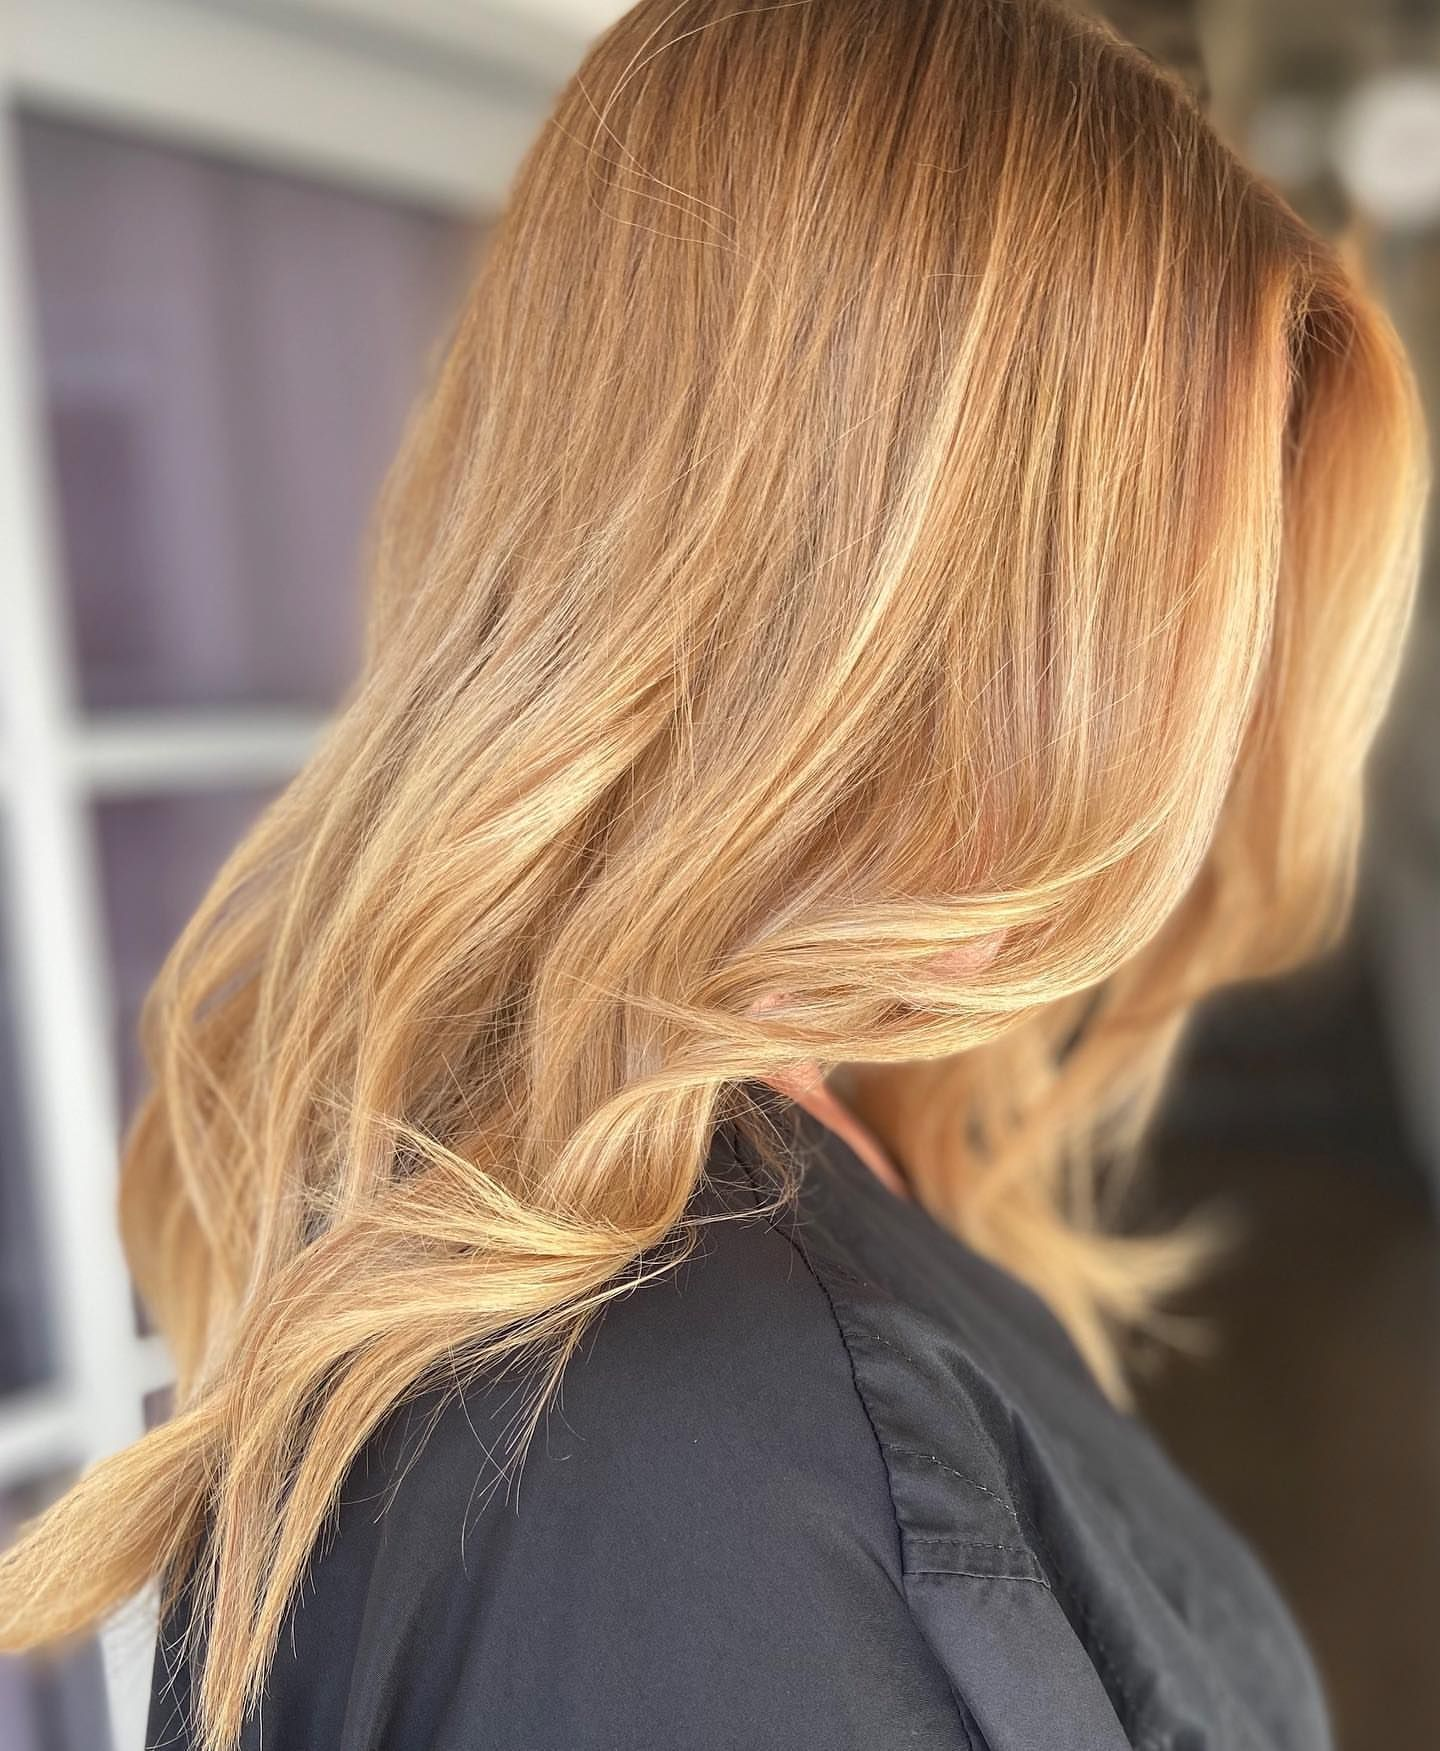 Cinnamon Toast Crunch☀️⠀ ⠀ I am sooooo here for this warmth right now!!!! From traditional highlights to a lived-in balayage, all toasted up for a sunny California fall. I used @kenraprofessio #cinnamontoastcrunch Cinnamon Toast Crunch☀️⠀ ⠀ I am sooooo here for this warmth right now!!!! From traditional highlights to a lived-in balayage, all toasted up for a sunny California fall. I used @kenraprofessio #cinnamontoastcrunch Cinnamon Toast Crunch☀️⠀ ⠀ I am sooooo here for #cinnamontoastcrunch